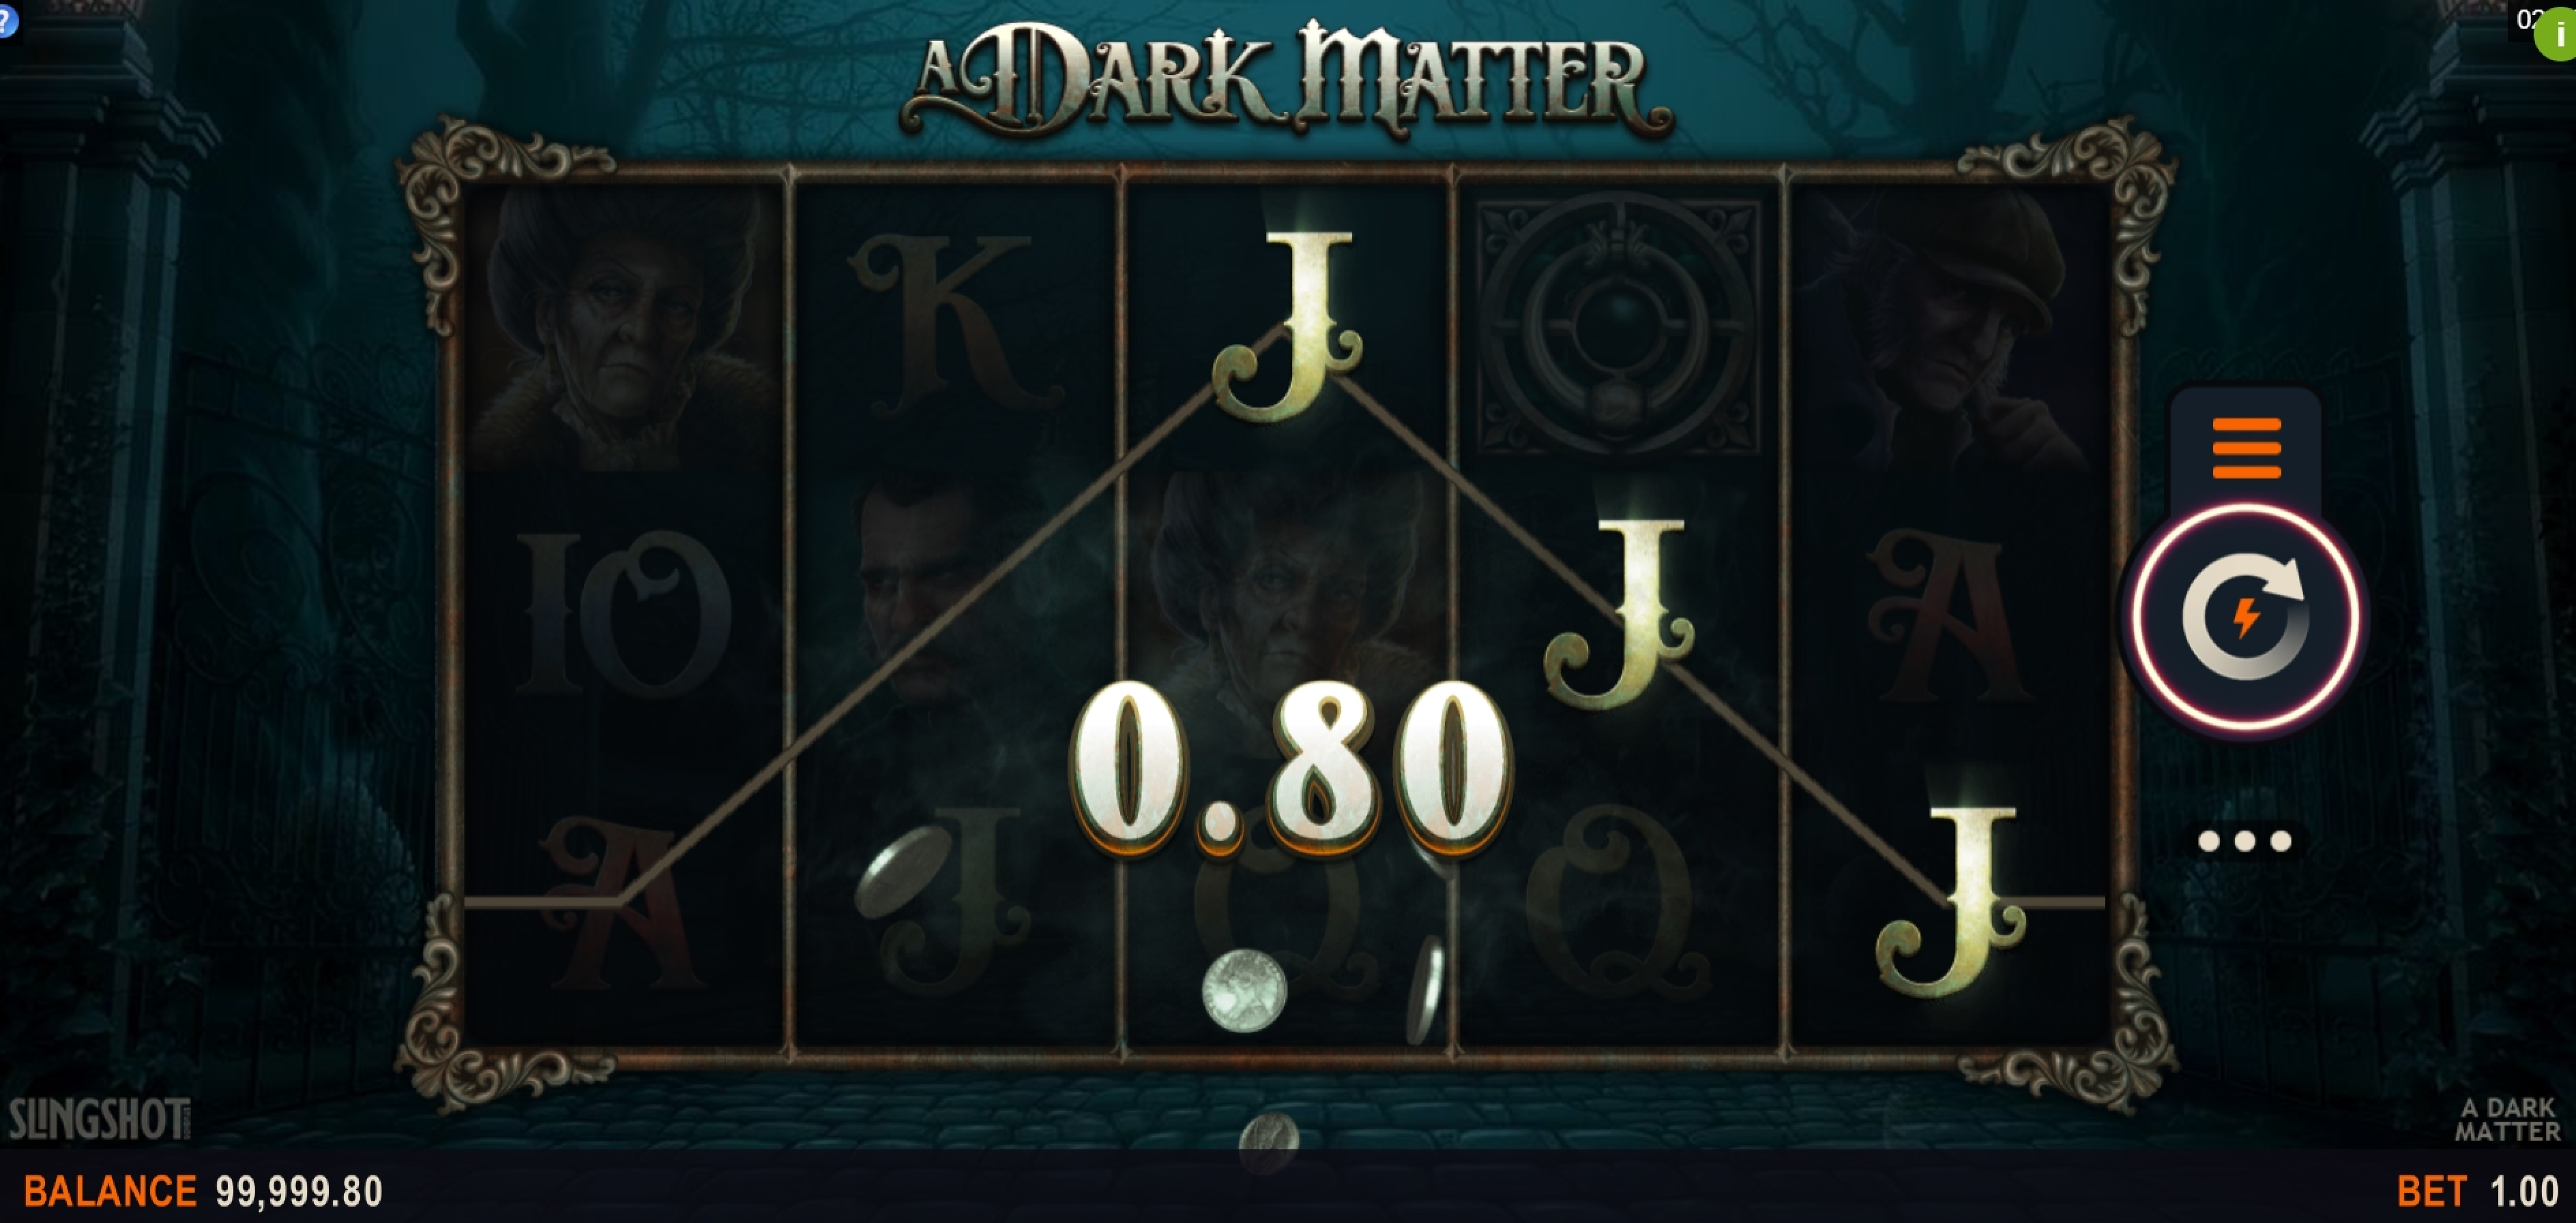 Win Money in A Dark Matter Free Slot Game by Slingshot Studios